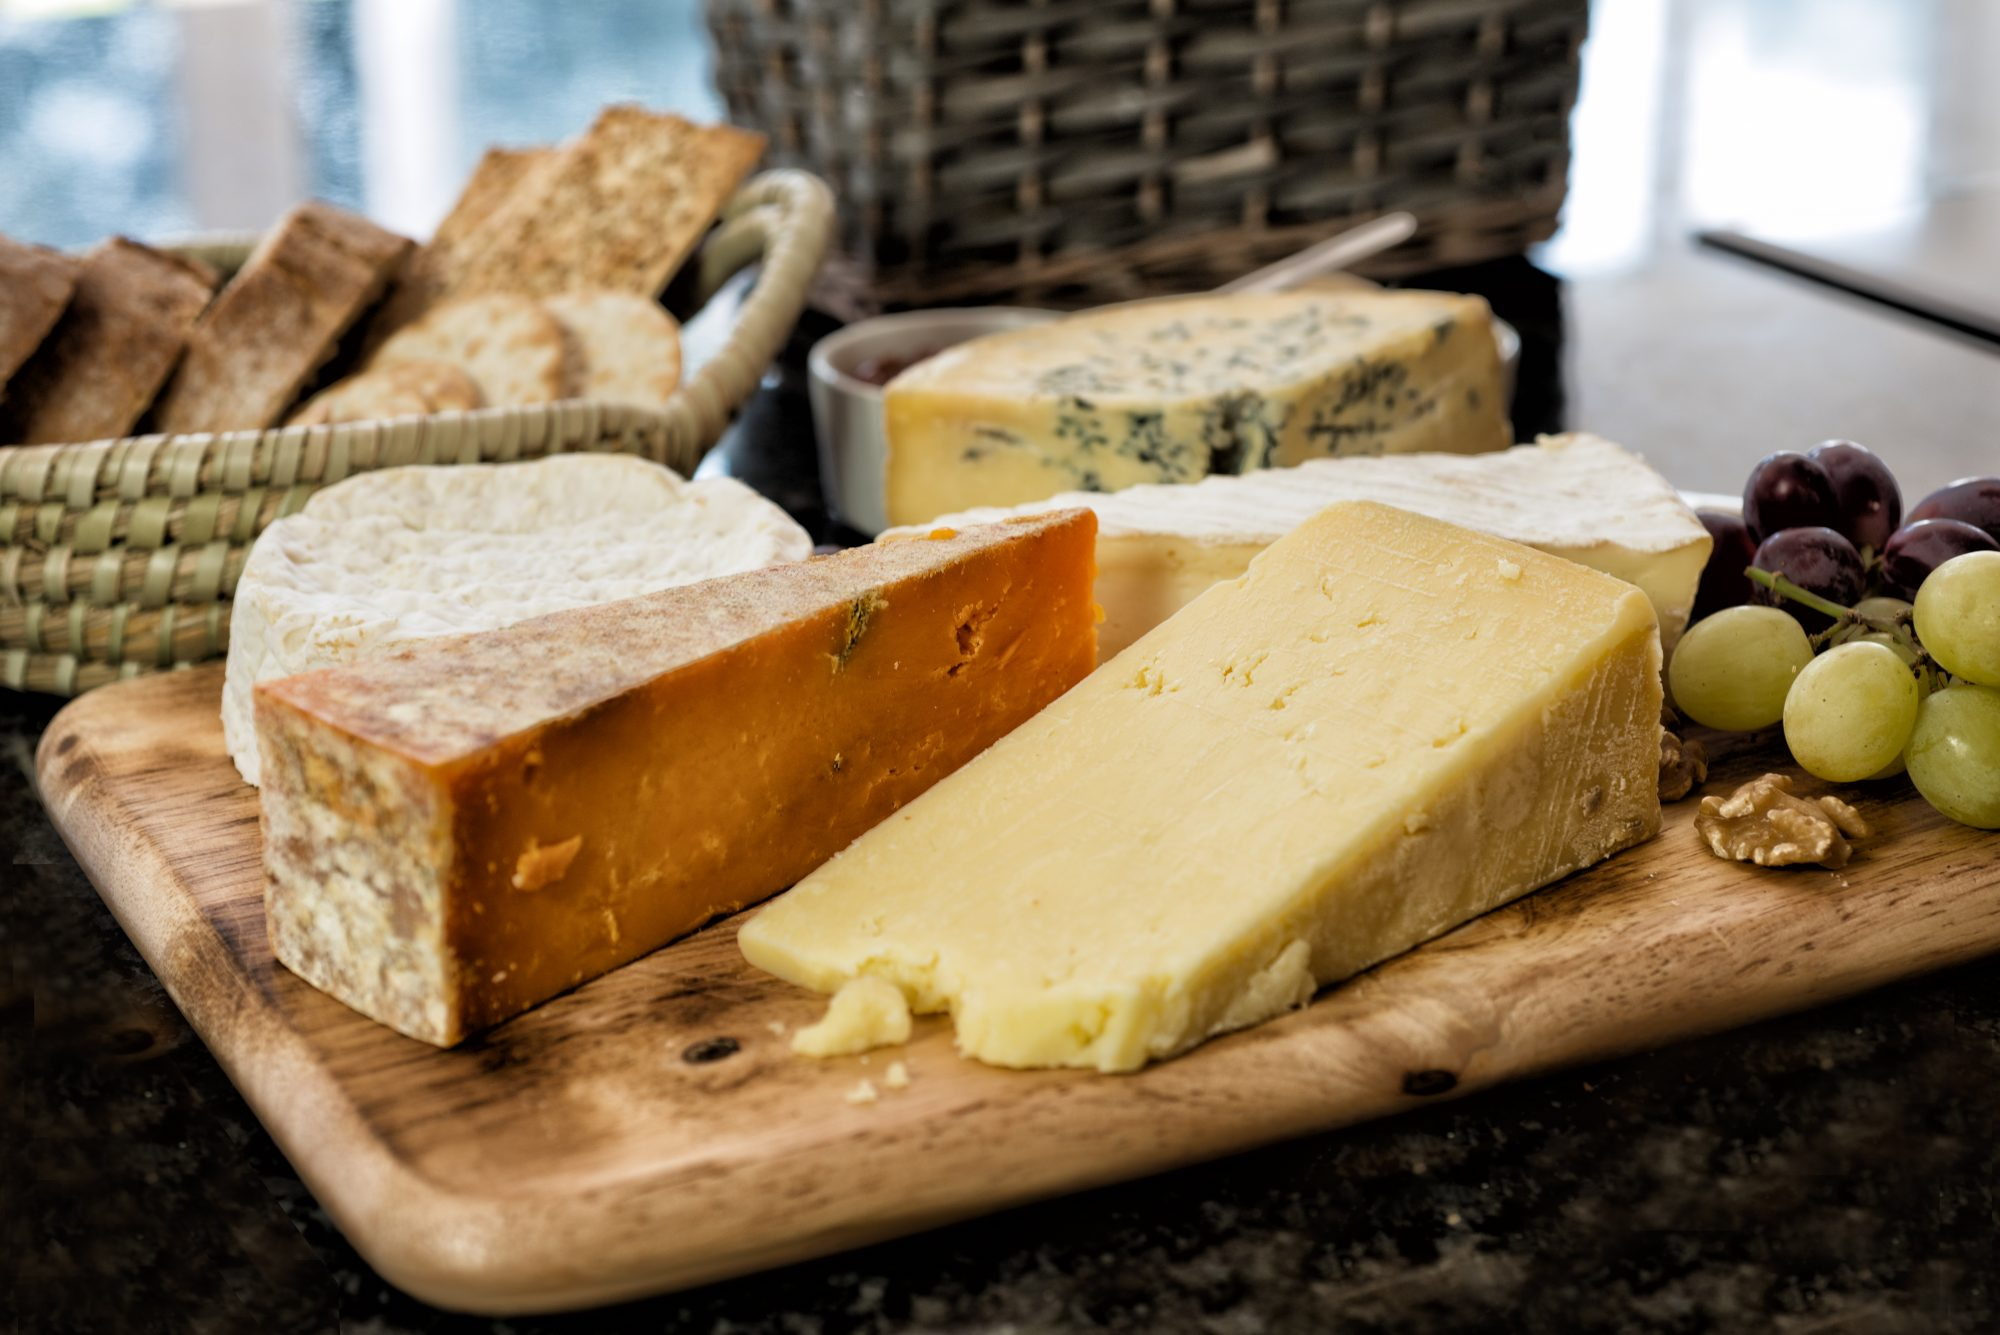 Parmageddon: A 100% Tariff on Cheese Would Be a Disaster